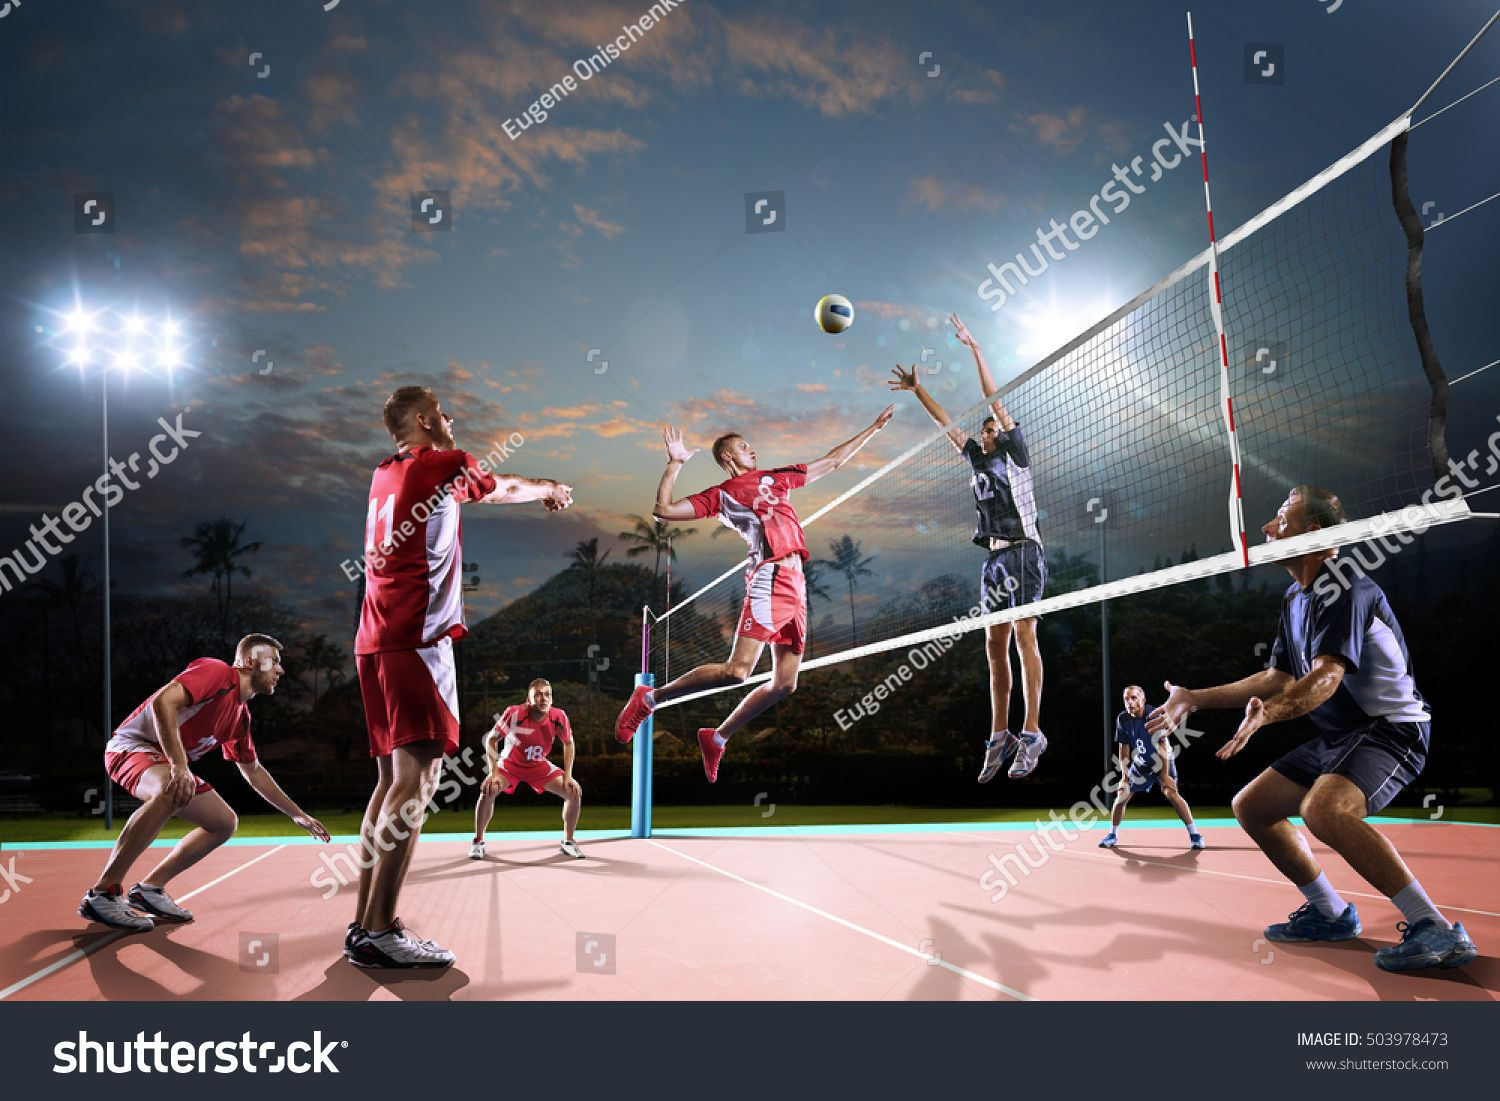 Professional Volleyball Players In Action On The Night Open Air Court Ad Ad Pl Professional Volleyball Professional Volleyball Players Volleyball Players